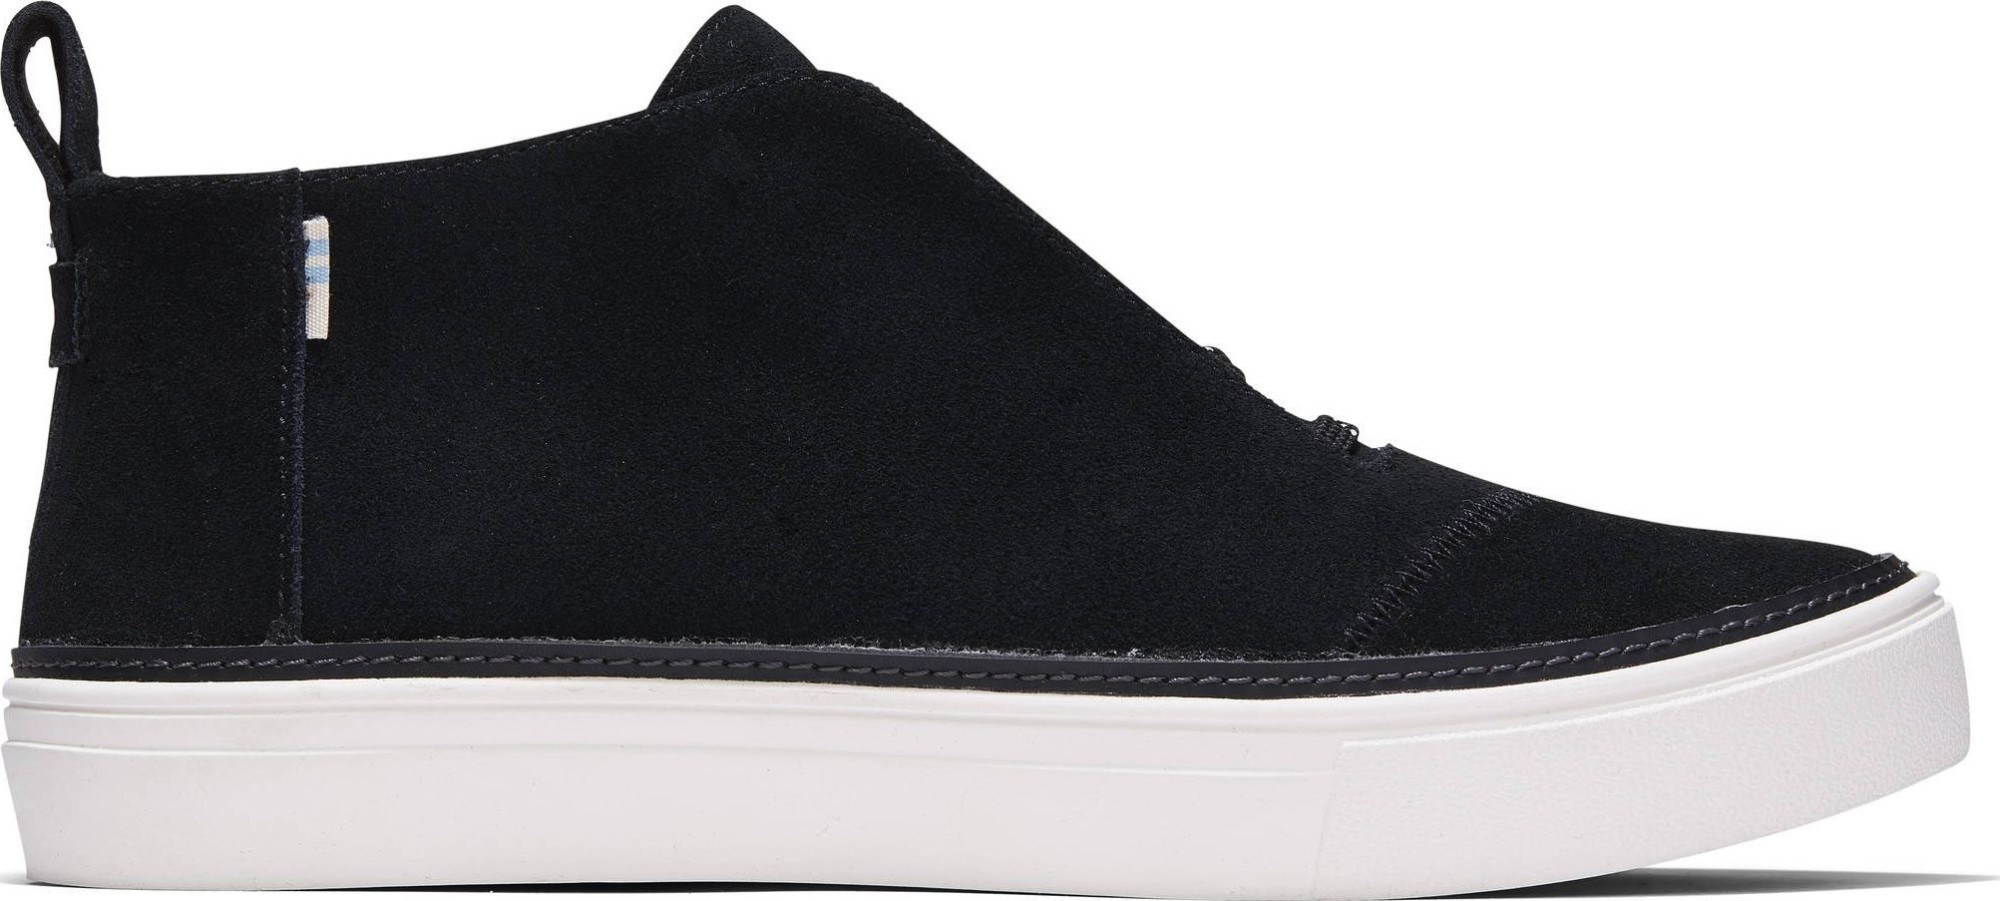 TOMS Suede Women's Riley Sneaker Black 36